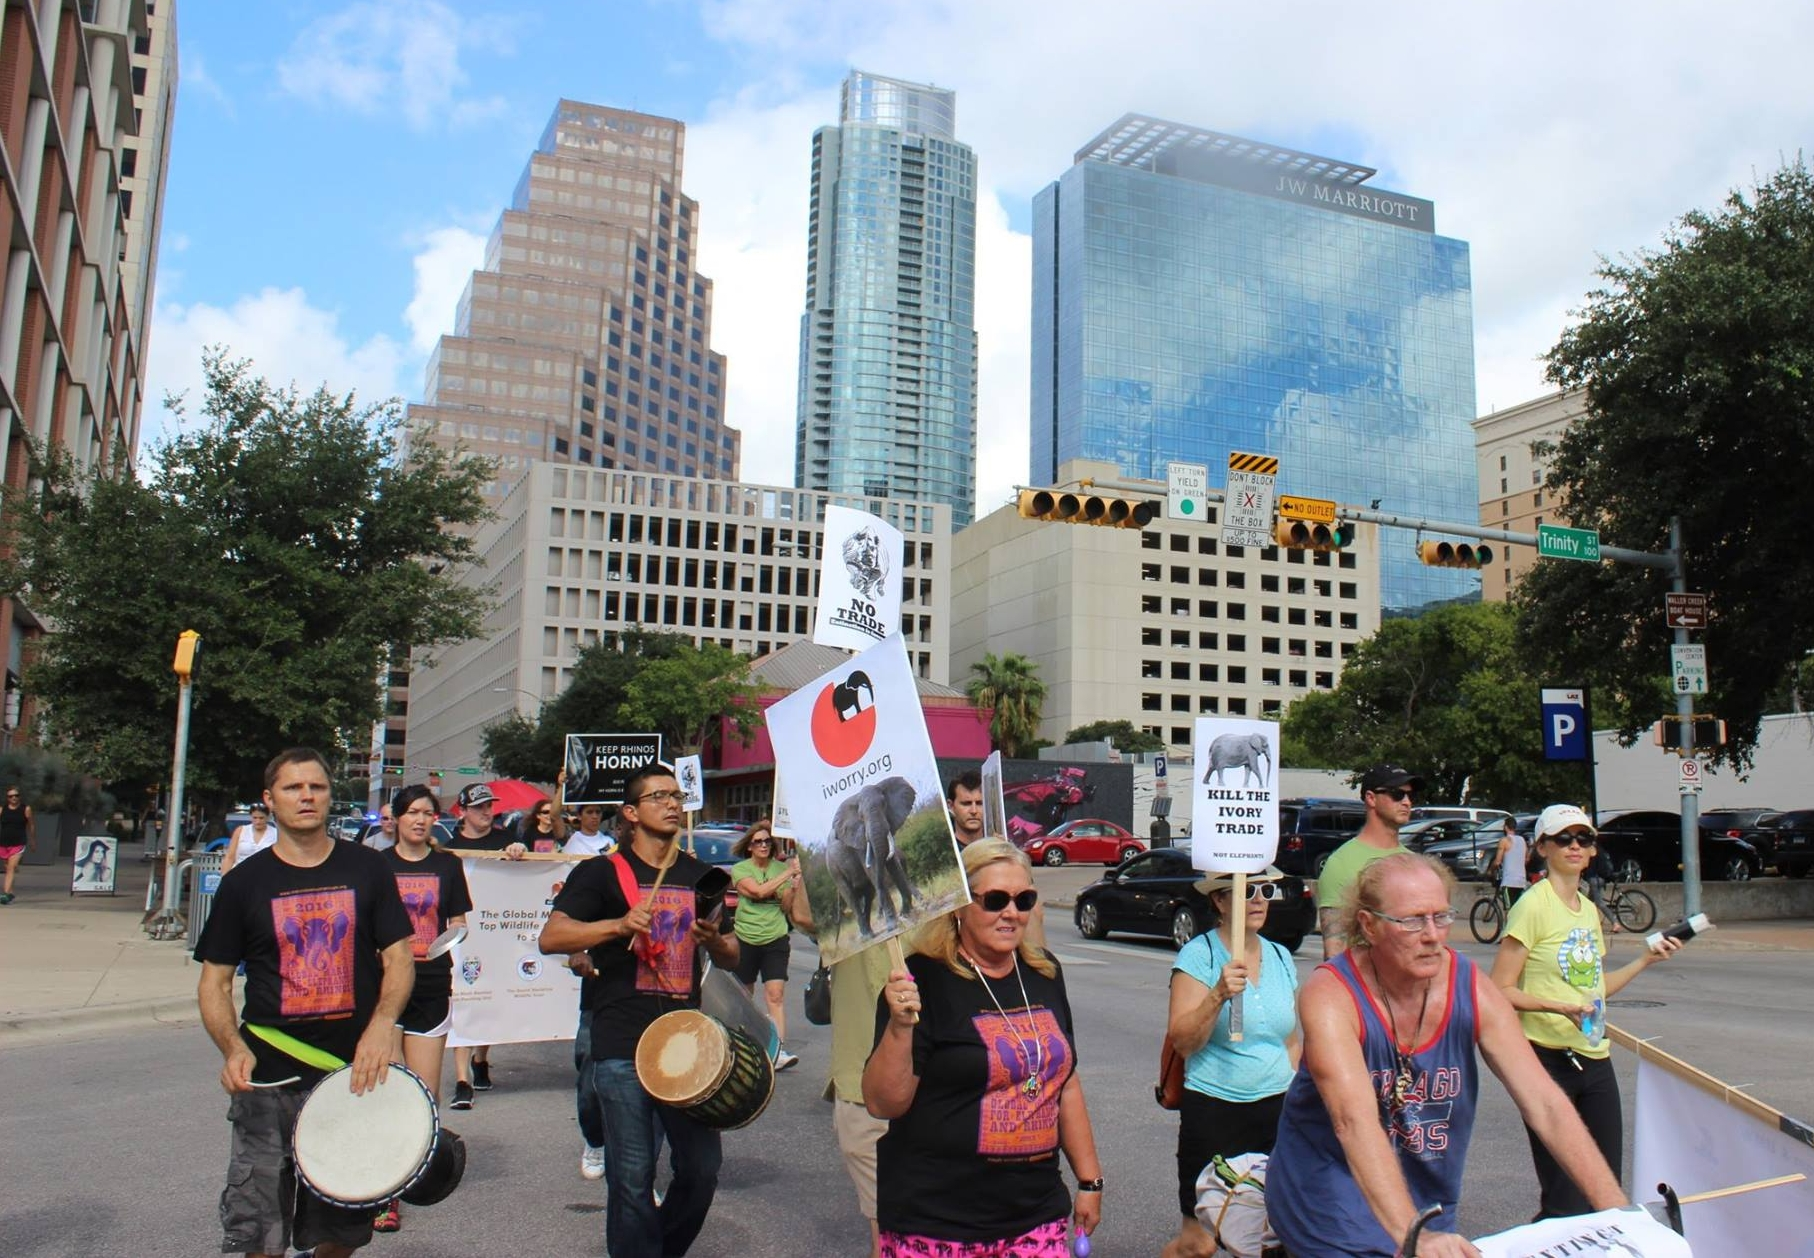 The Global March ATX crowd was from all walks of life and passionate about saving WILDLIFE for future generations.